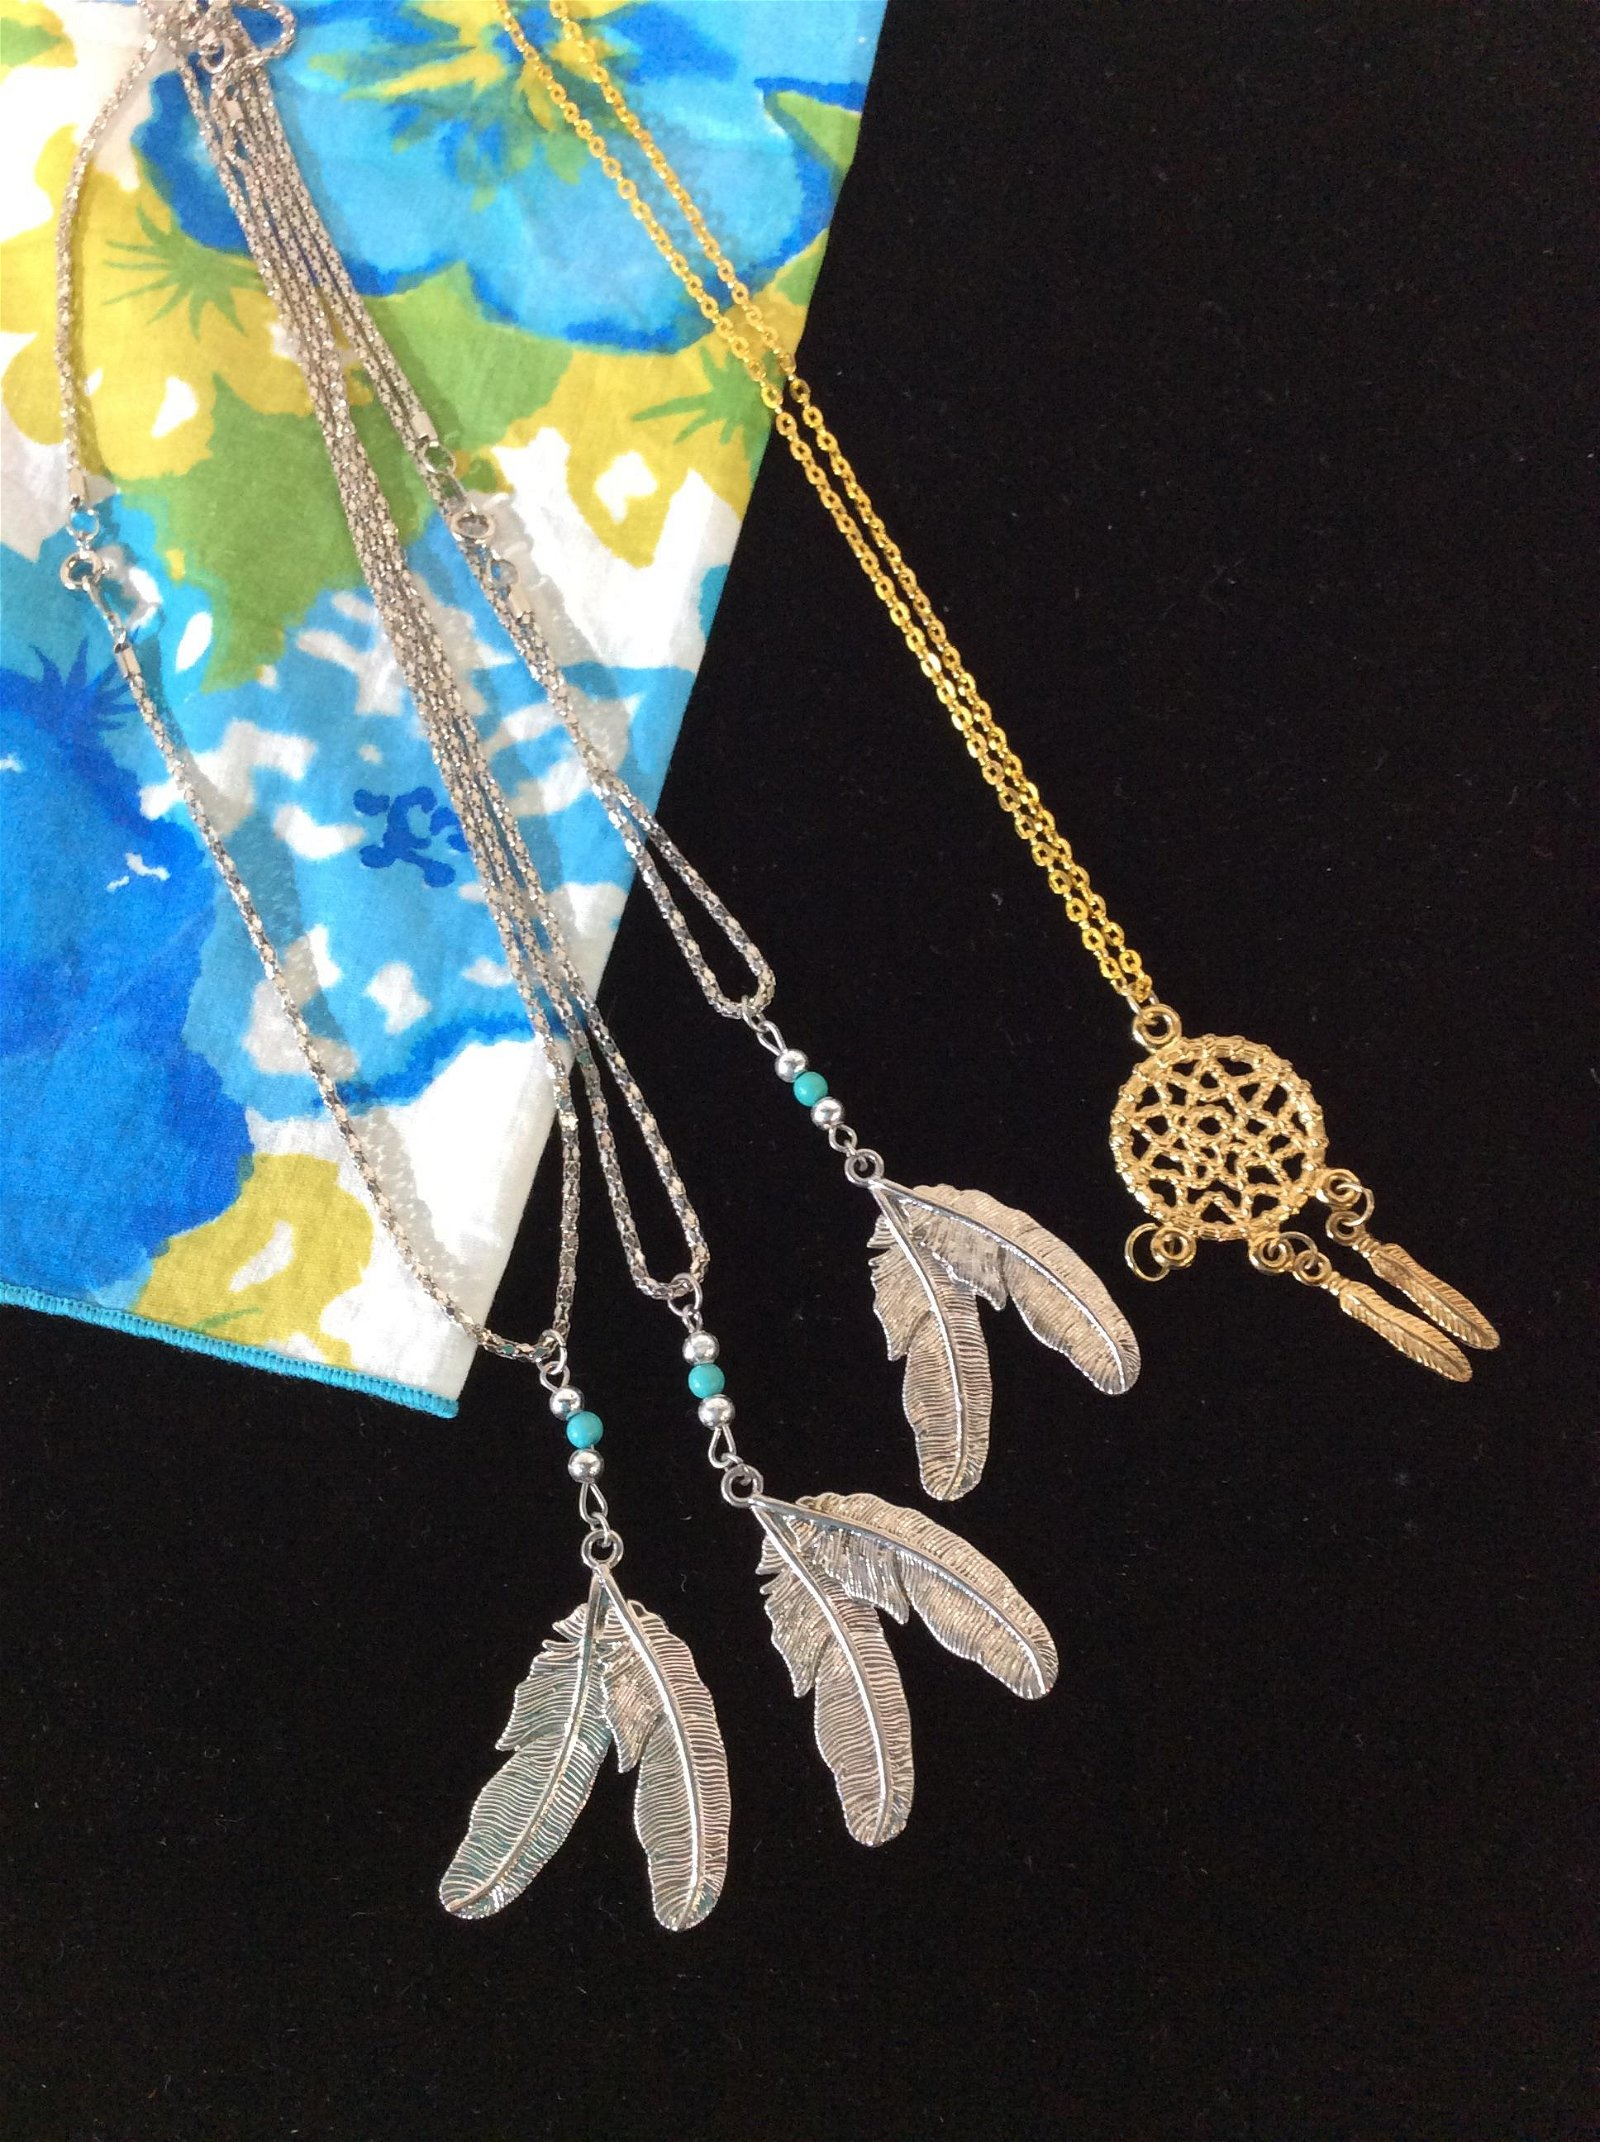 Sioux Tribal Feather + Dream Catcher Necklaces, 5